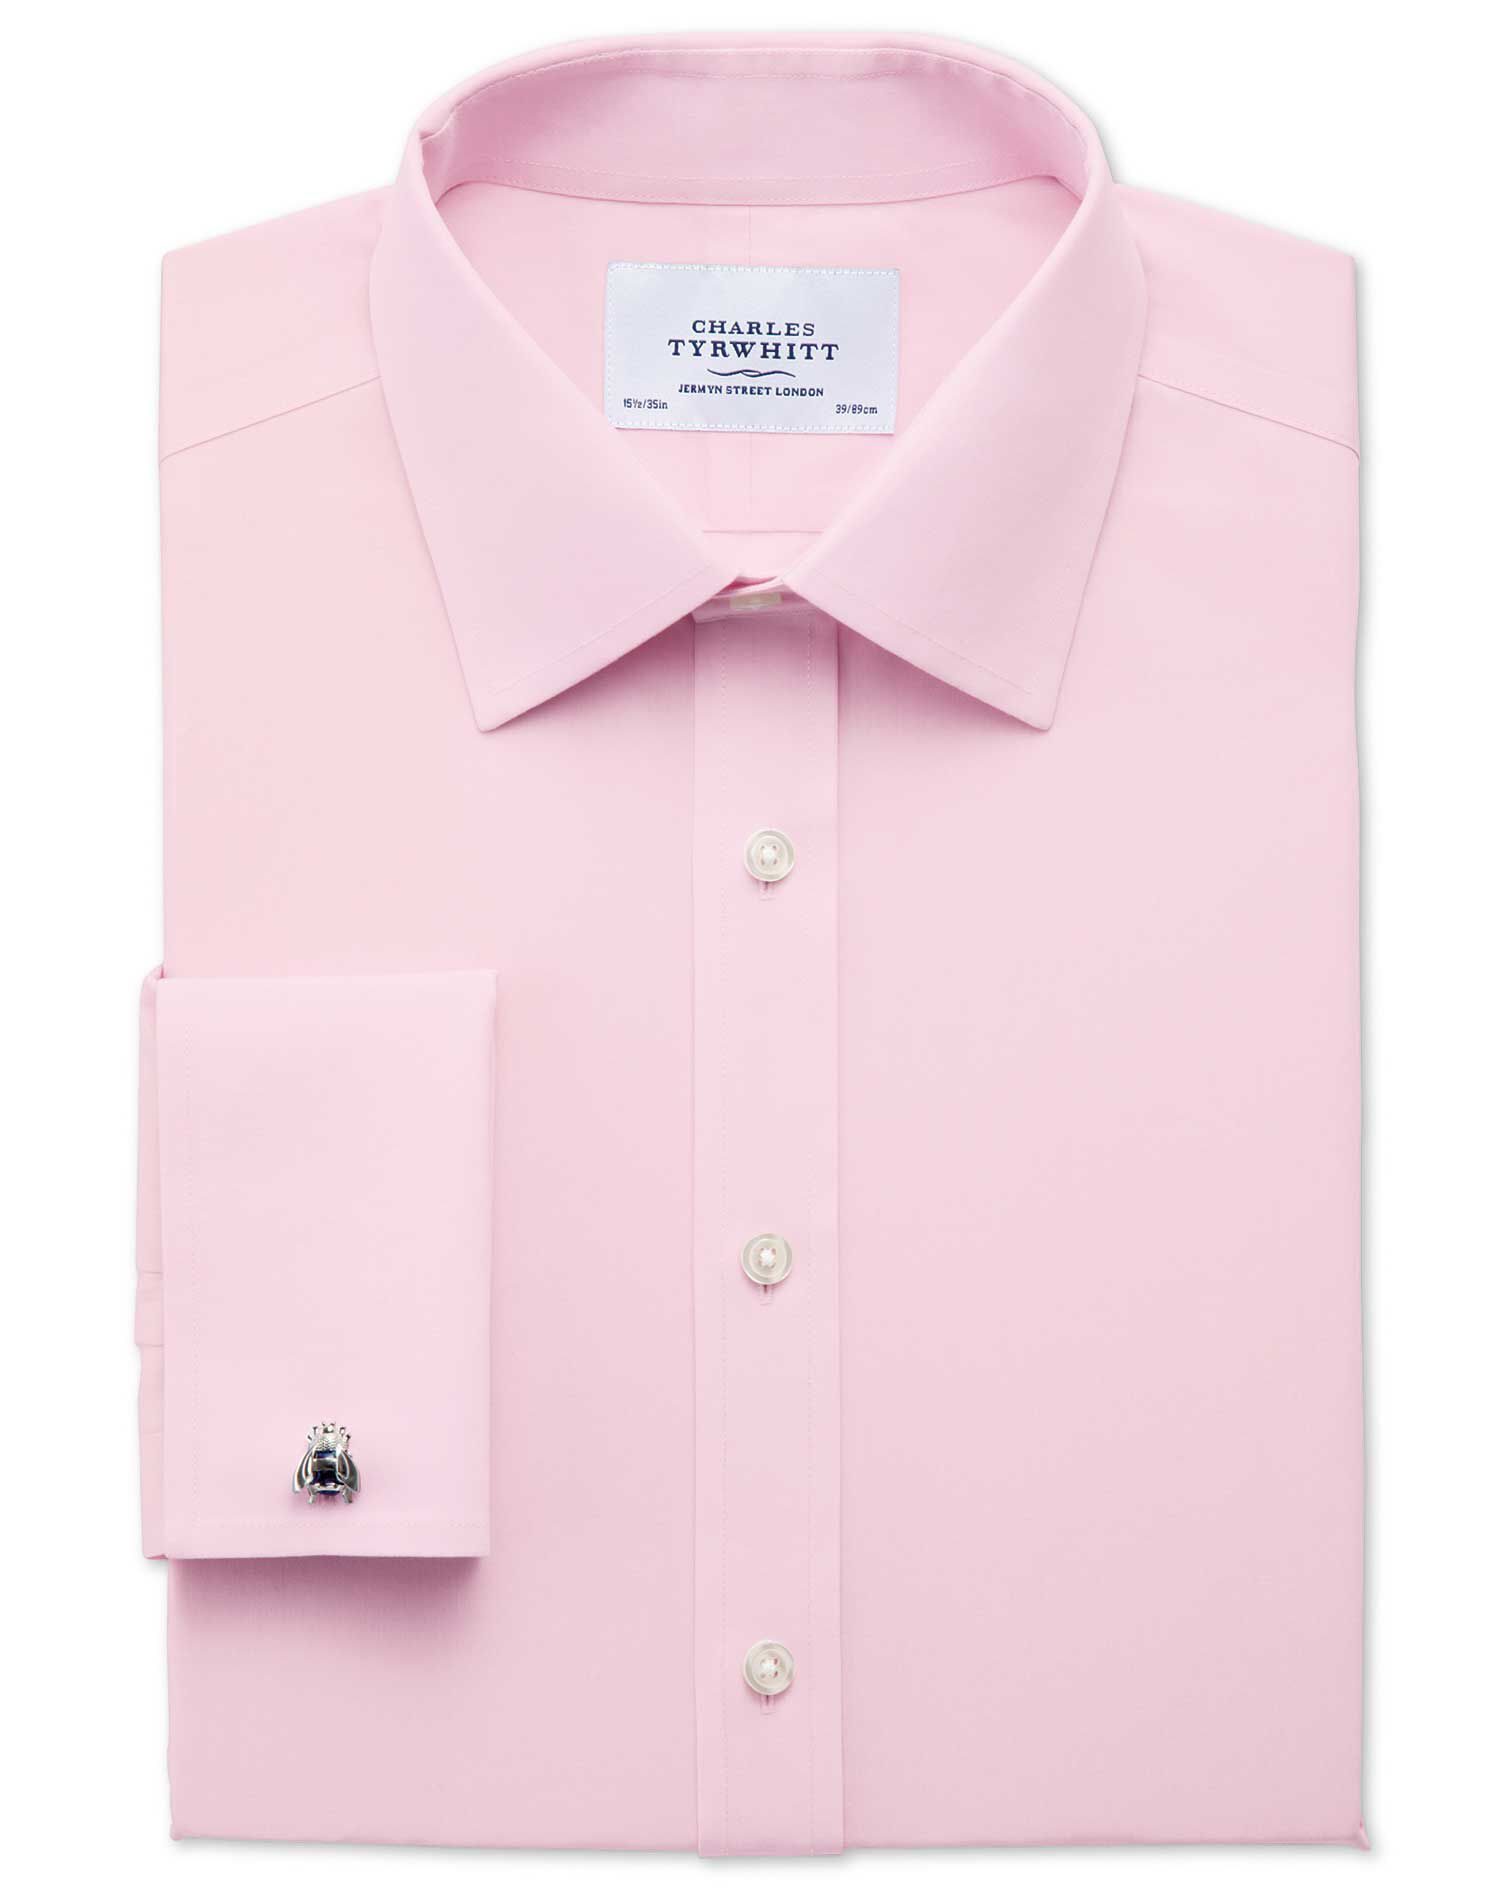 Slim Fit Non-Iron Poplin Light Pink Cotton Formal Shirt Single Cuff Size 17/37 by Charles Tyrwhitt